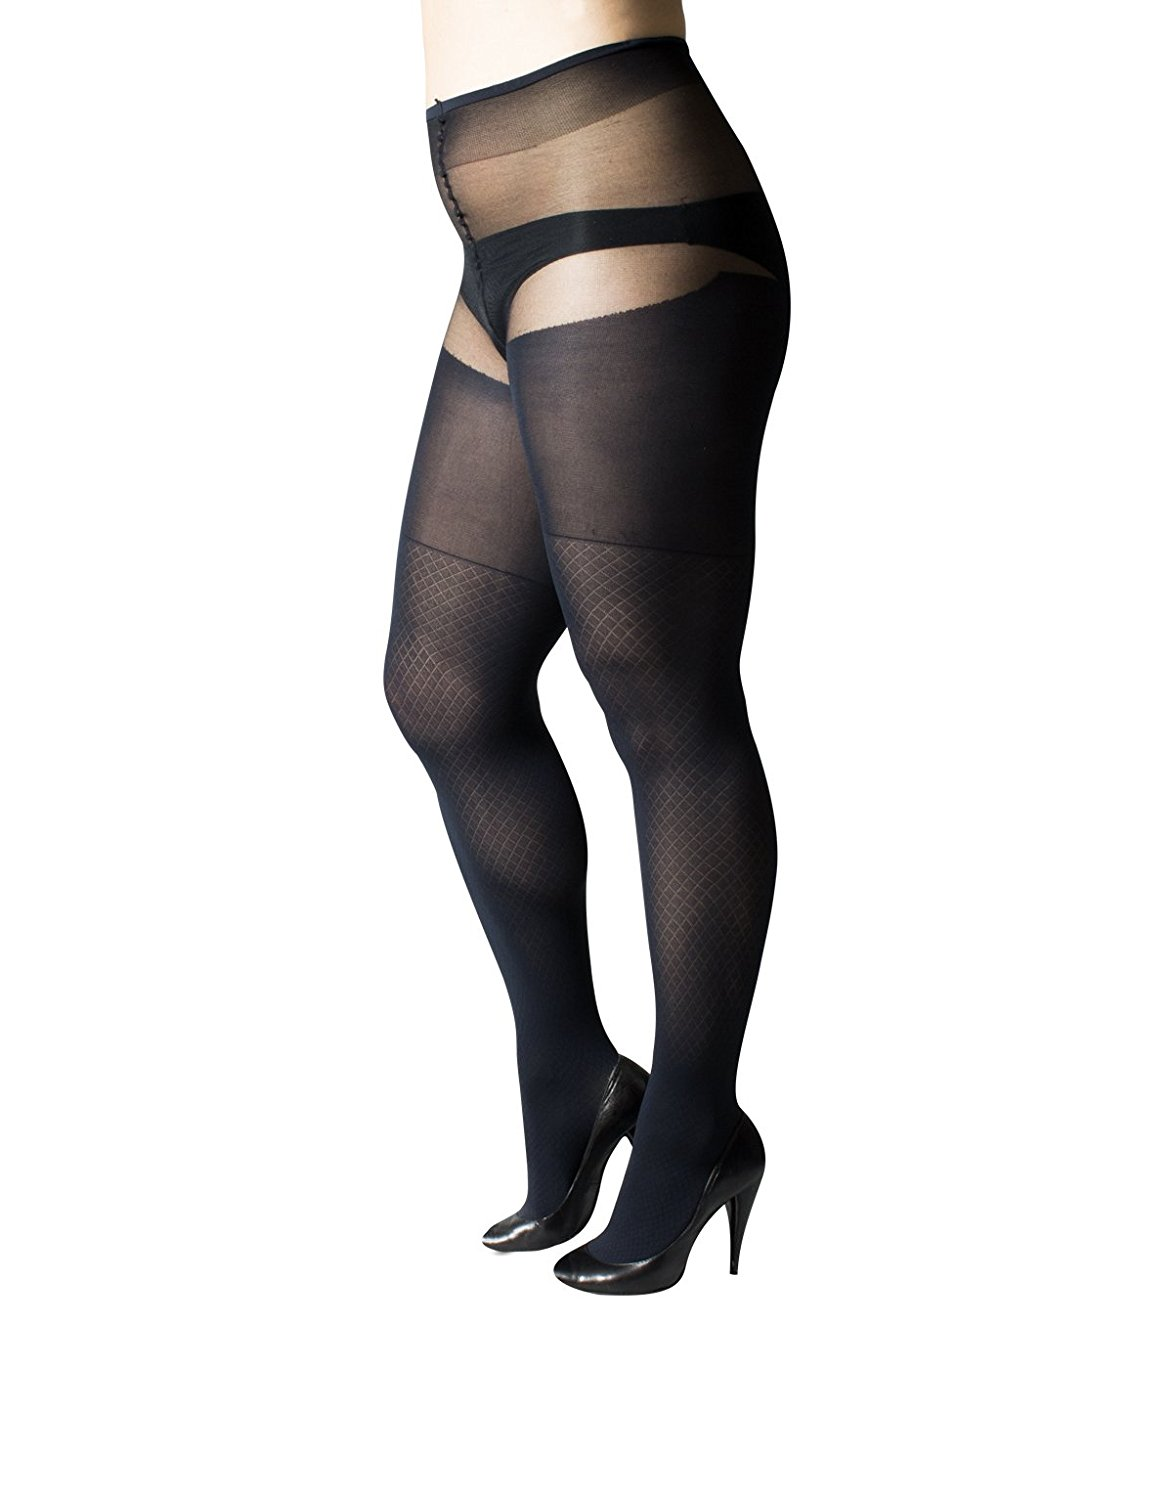 409855f804a4c Get Quotations · PLUS SIZE PANTYHOSE | SEXY CURVY ARGYLE TIGHTS | BLACK,  BLUE | 50 DEN